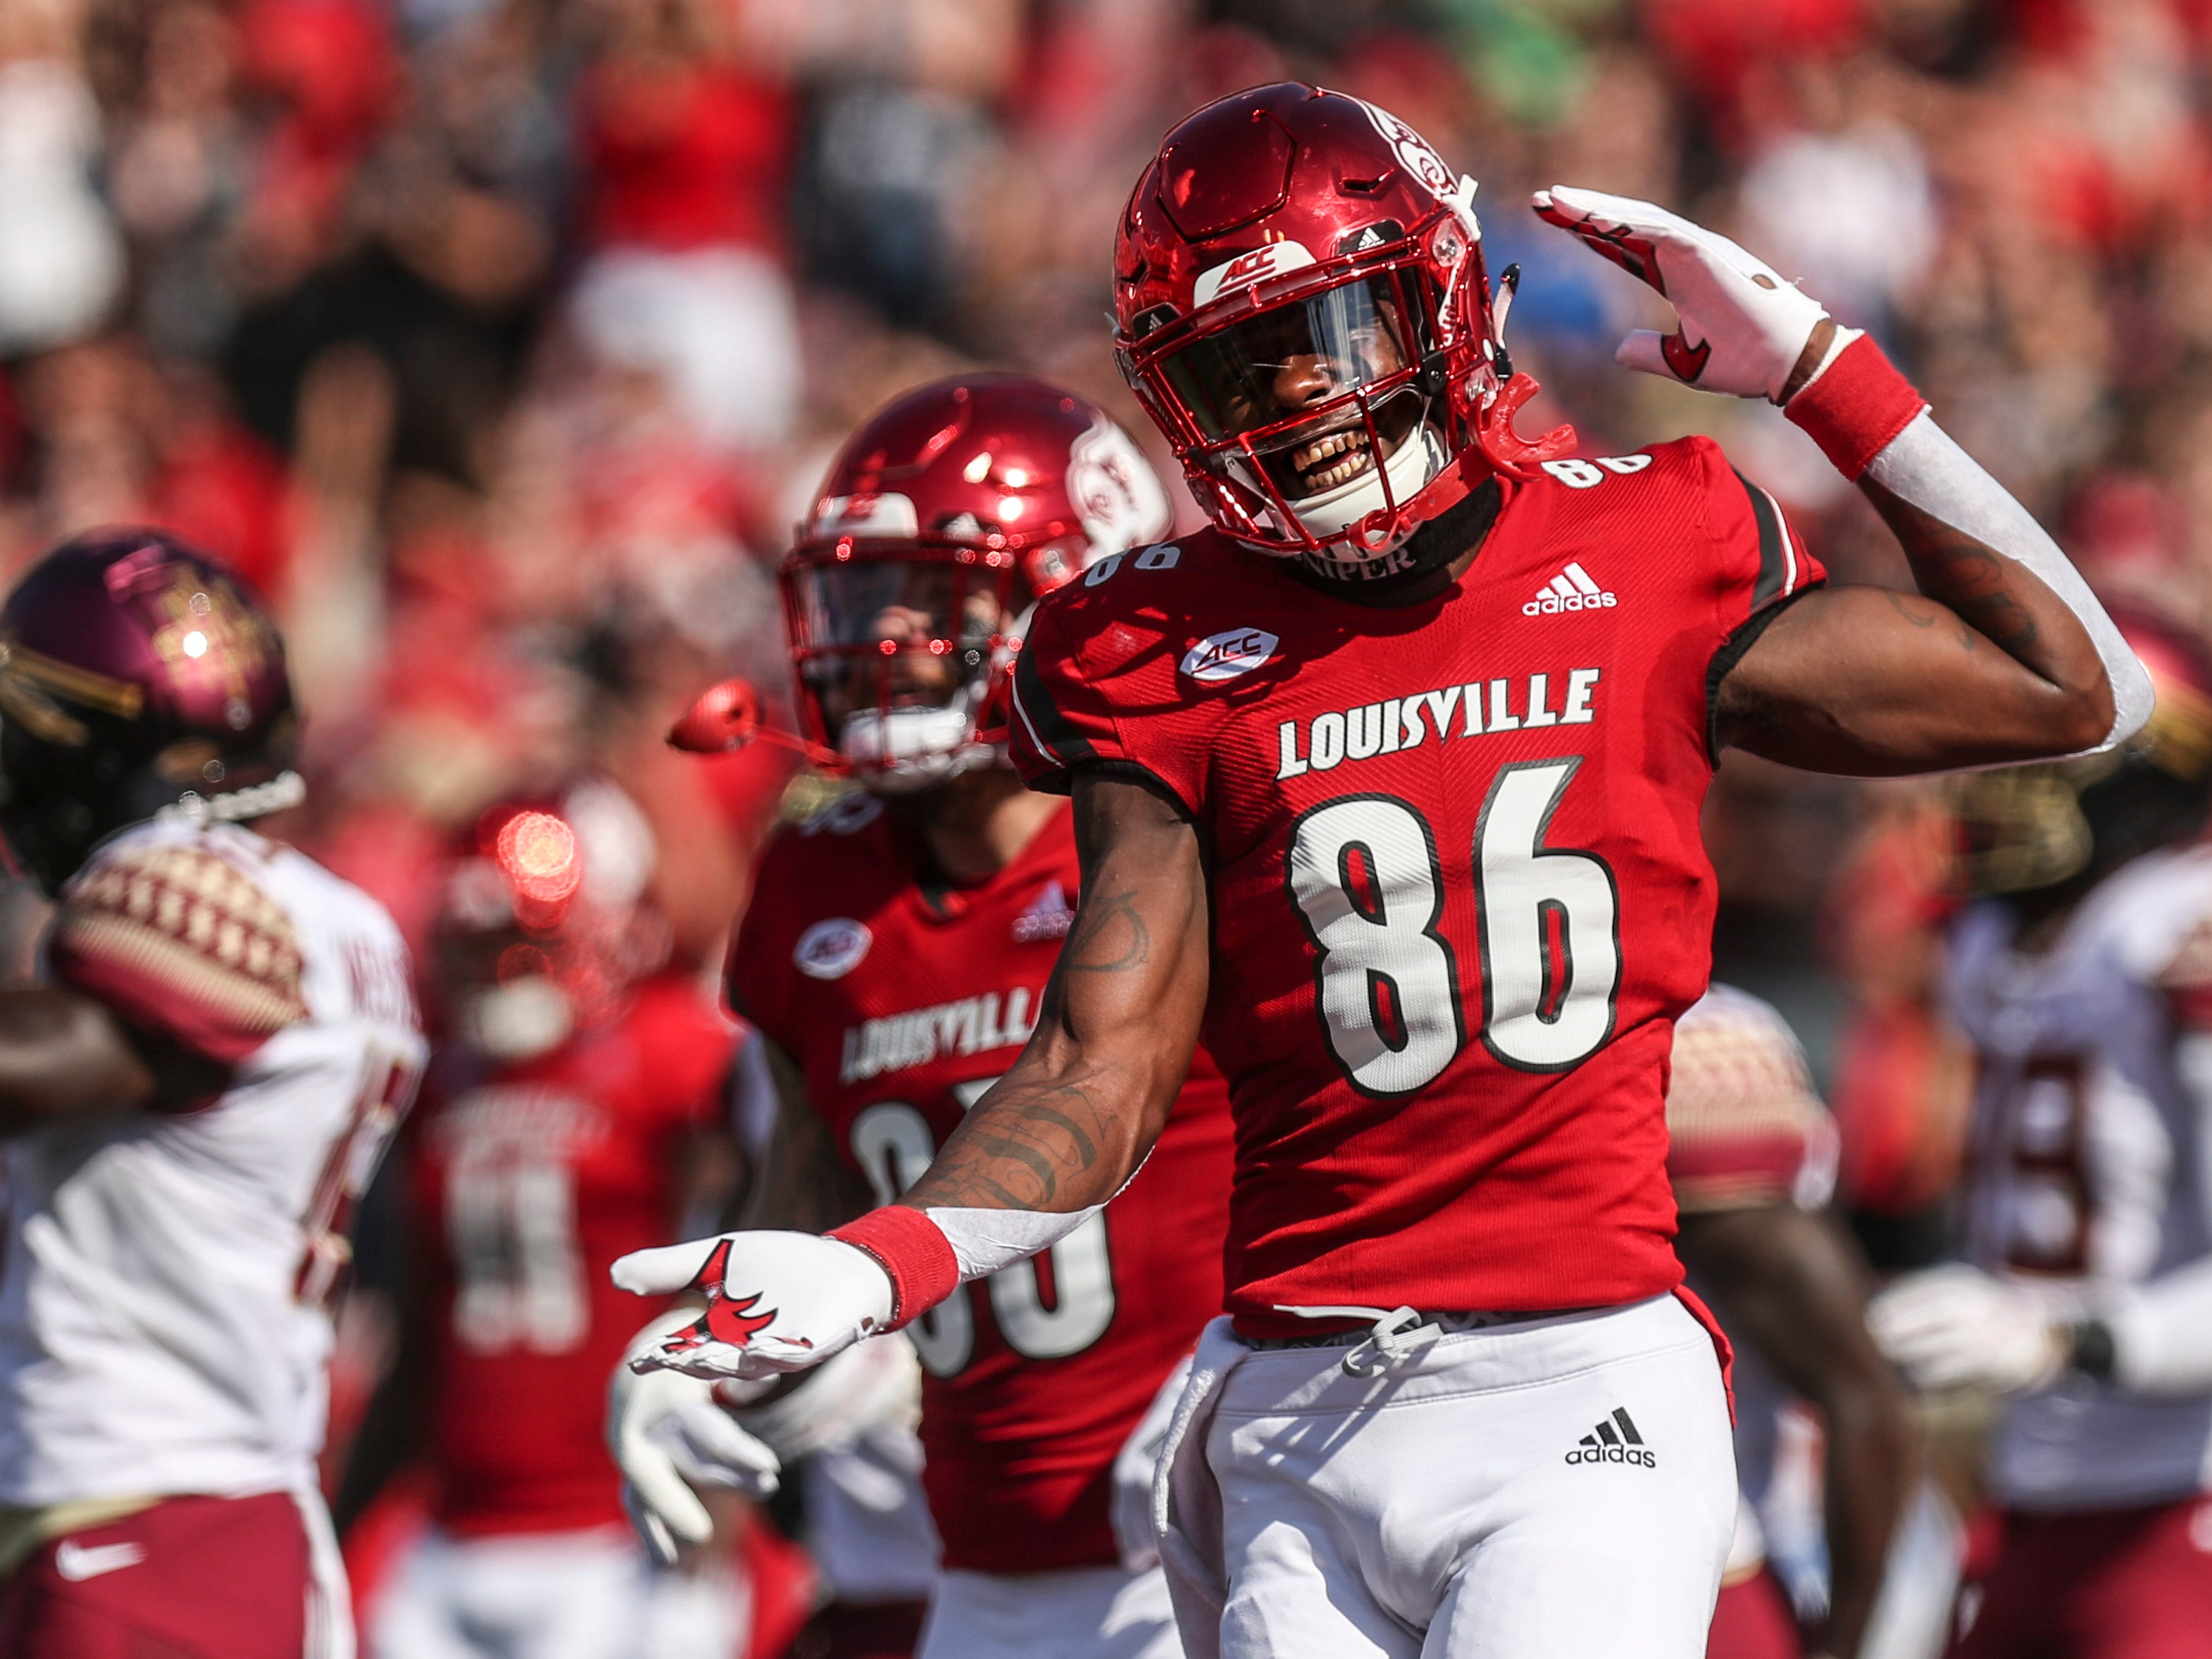 Louisville's Devante Peete celebrates quarterback Juwan Pass' touchdown run in the first half against Florida State Saturday afternoon. Sept. 29, 2018